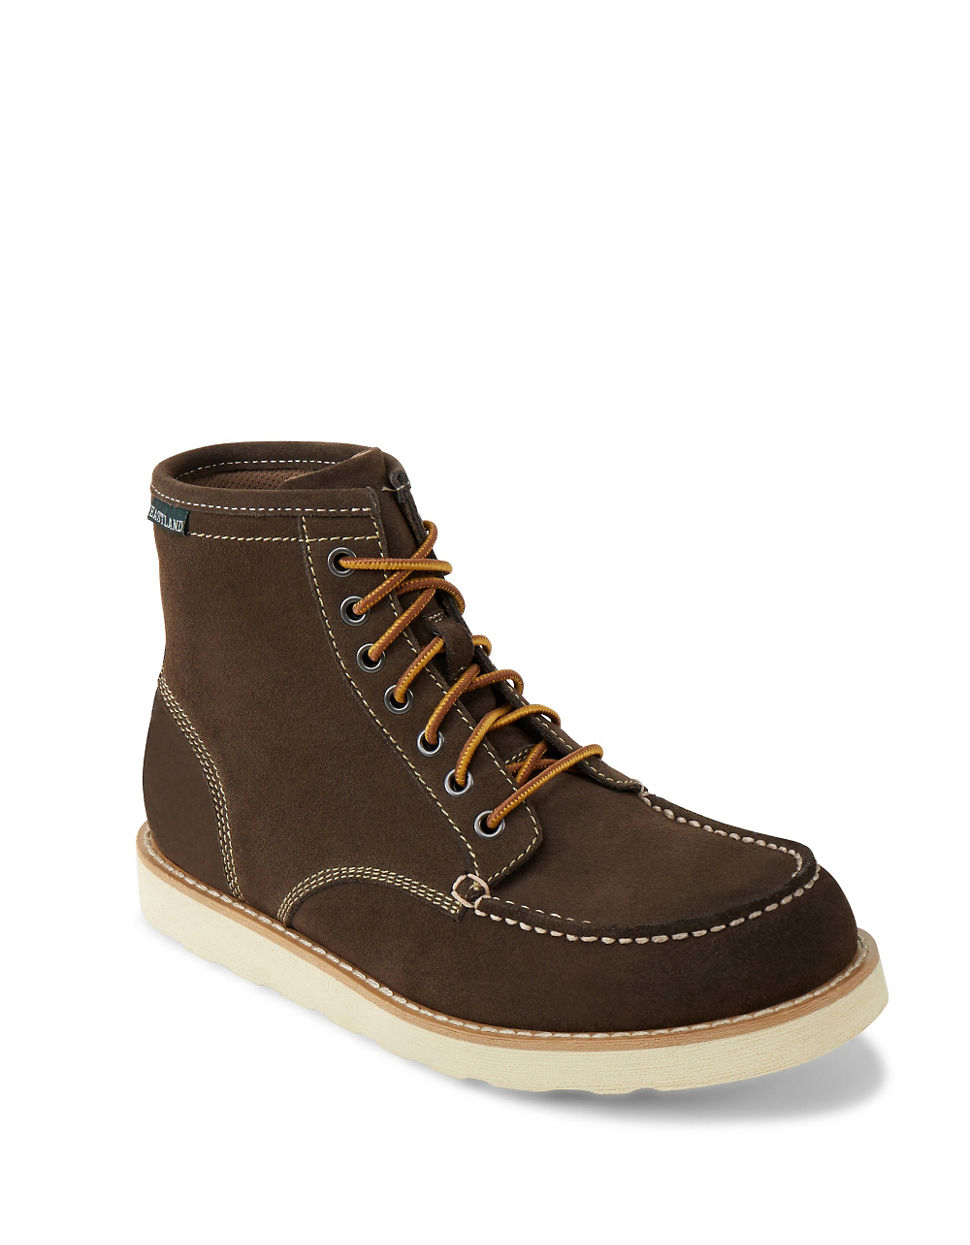 Eastland Lumber Up Boots In Brown For Men Lyst